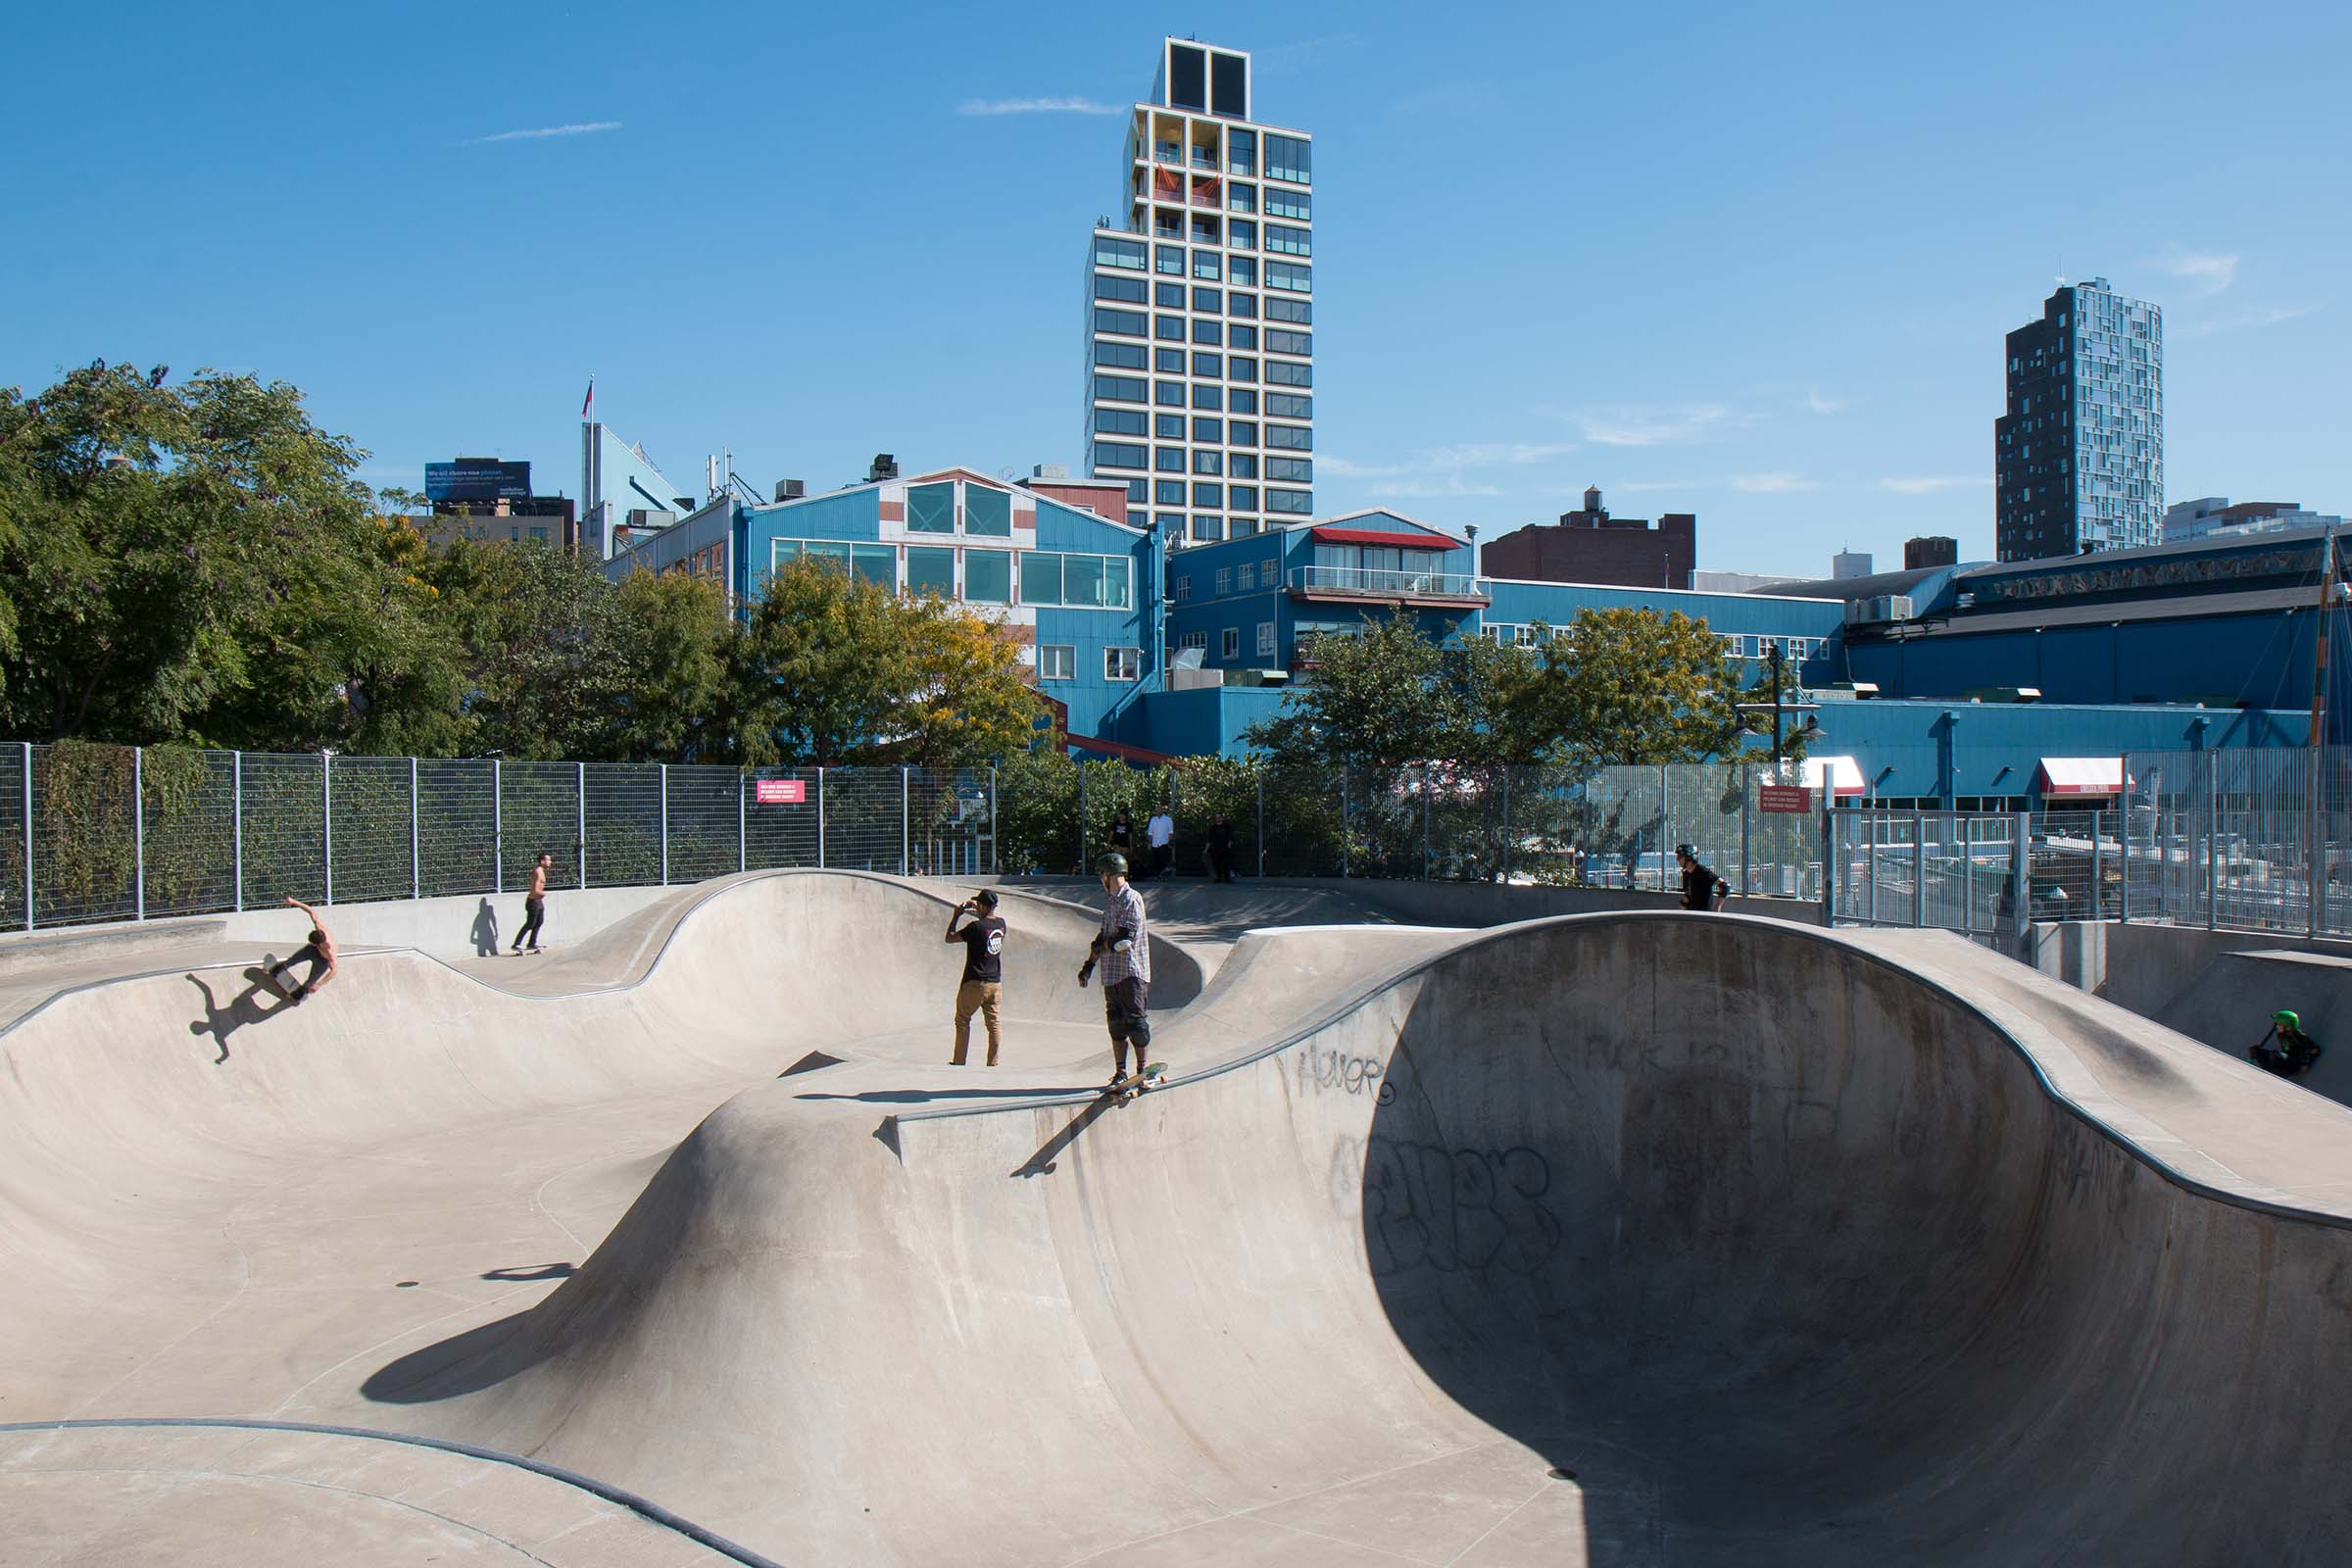 Two skateboarders ready to head down a hill at the skatepark at Pier 62